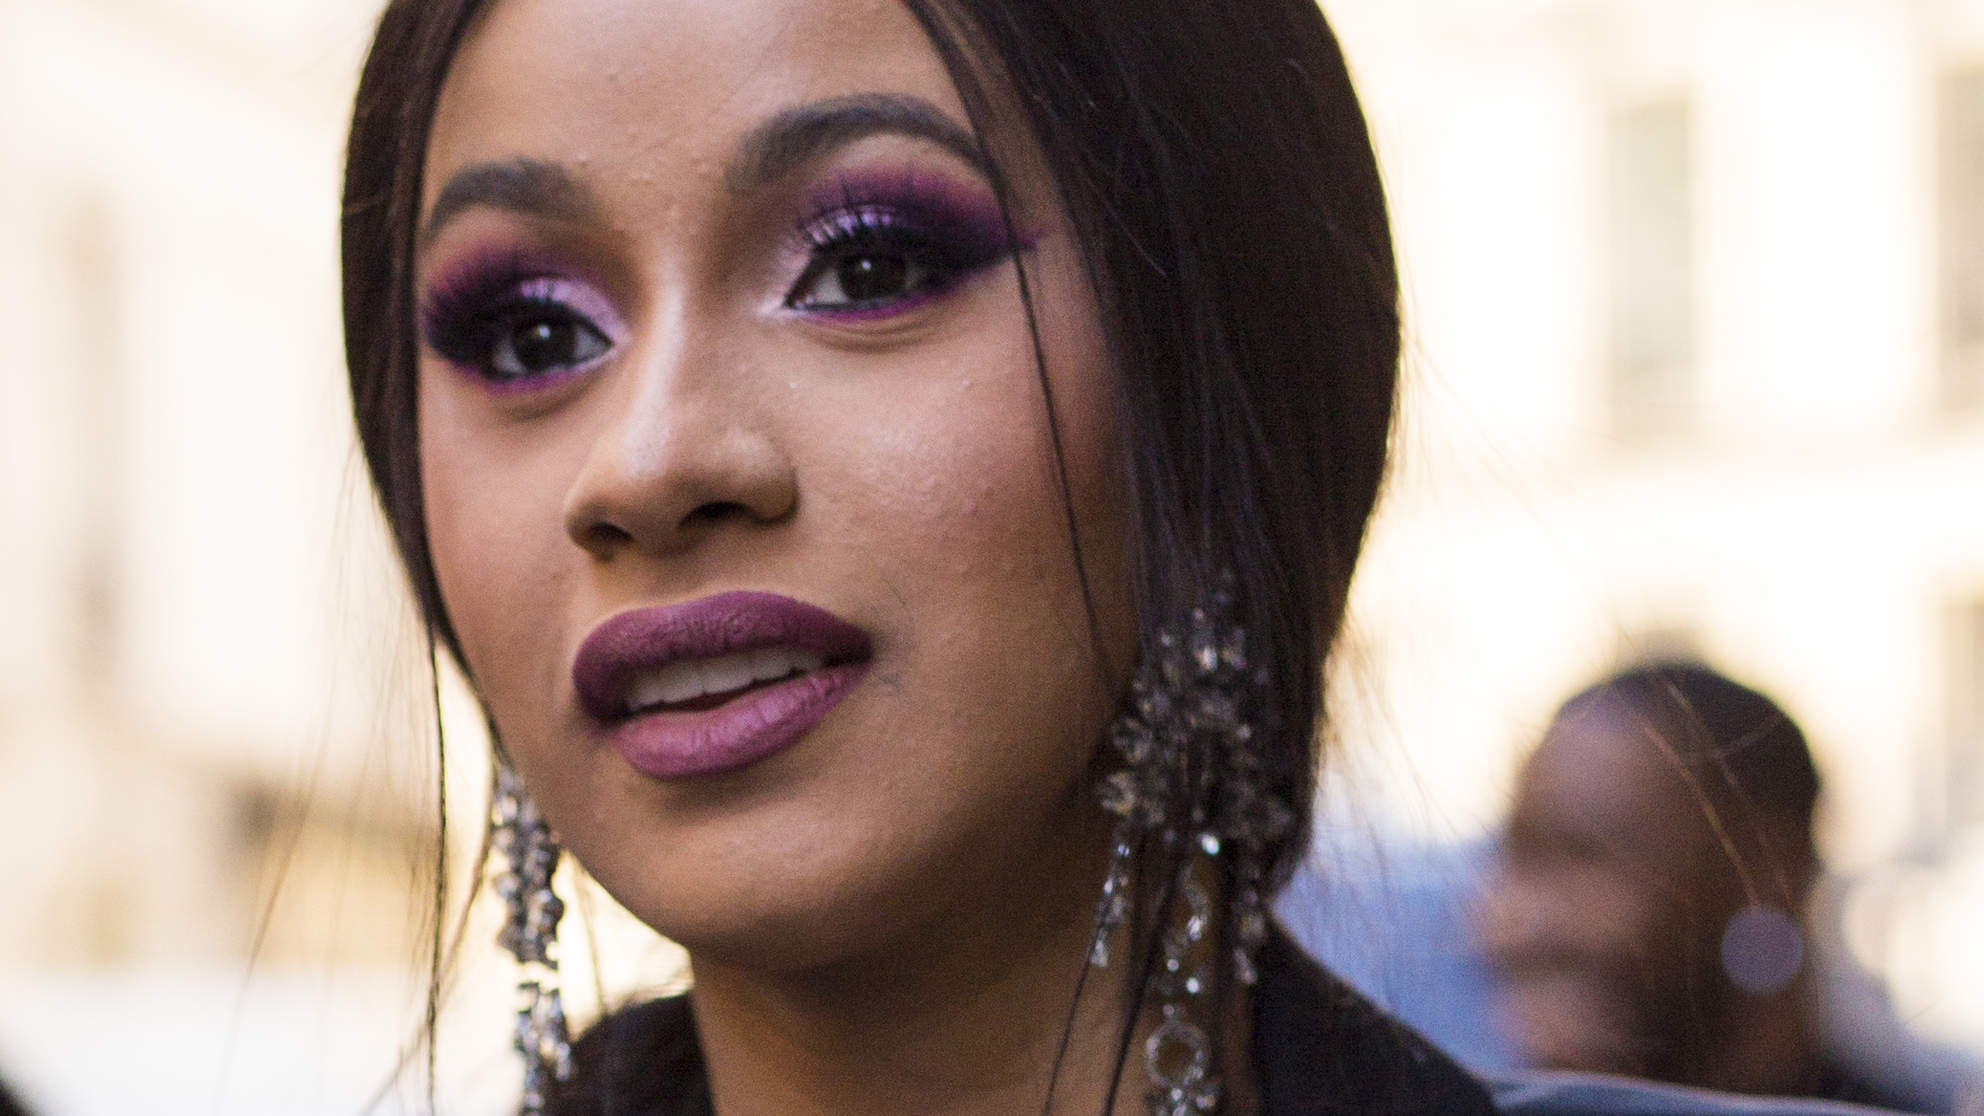 Cardi B Shows Off Post-Baby Stomach and Asks Fans How to 'Get Rid of the Black Line' After Birth